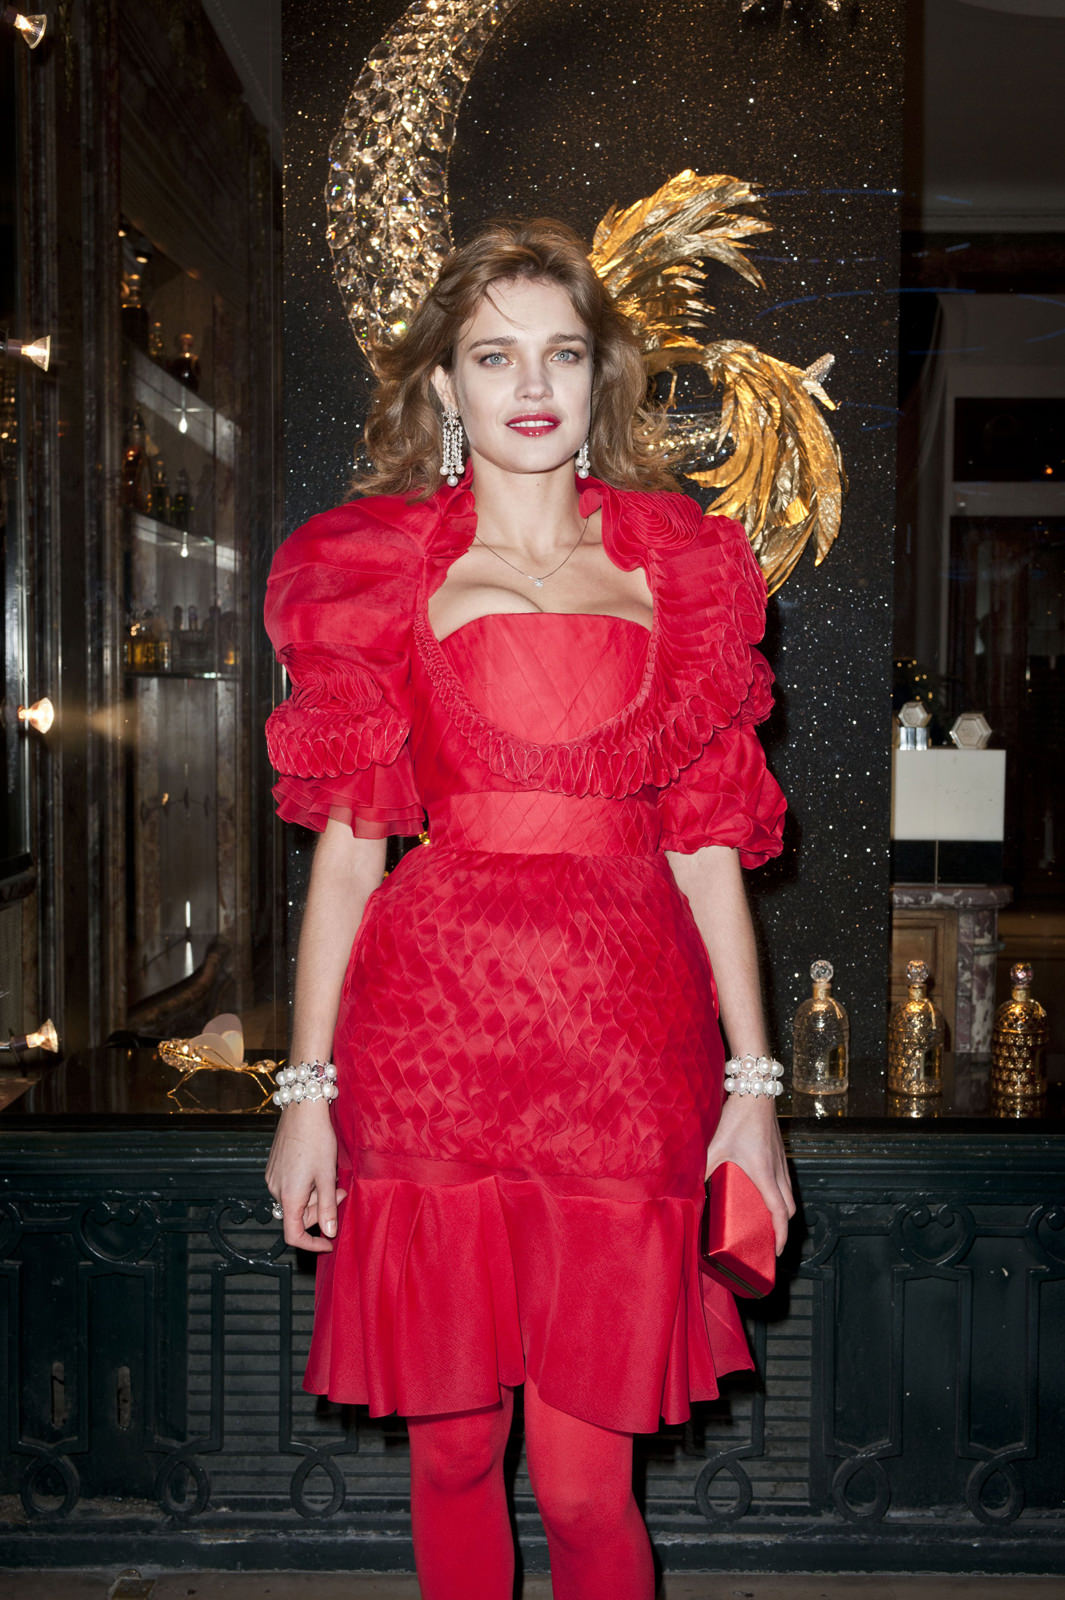 Natalia Vodianova Photo Gallery